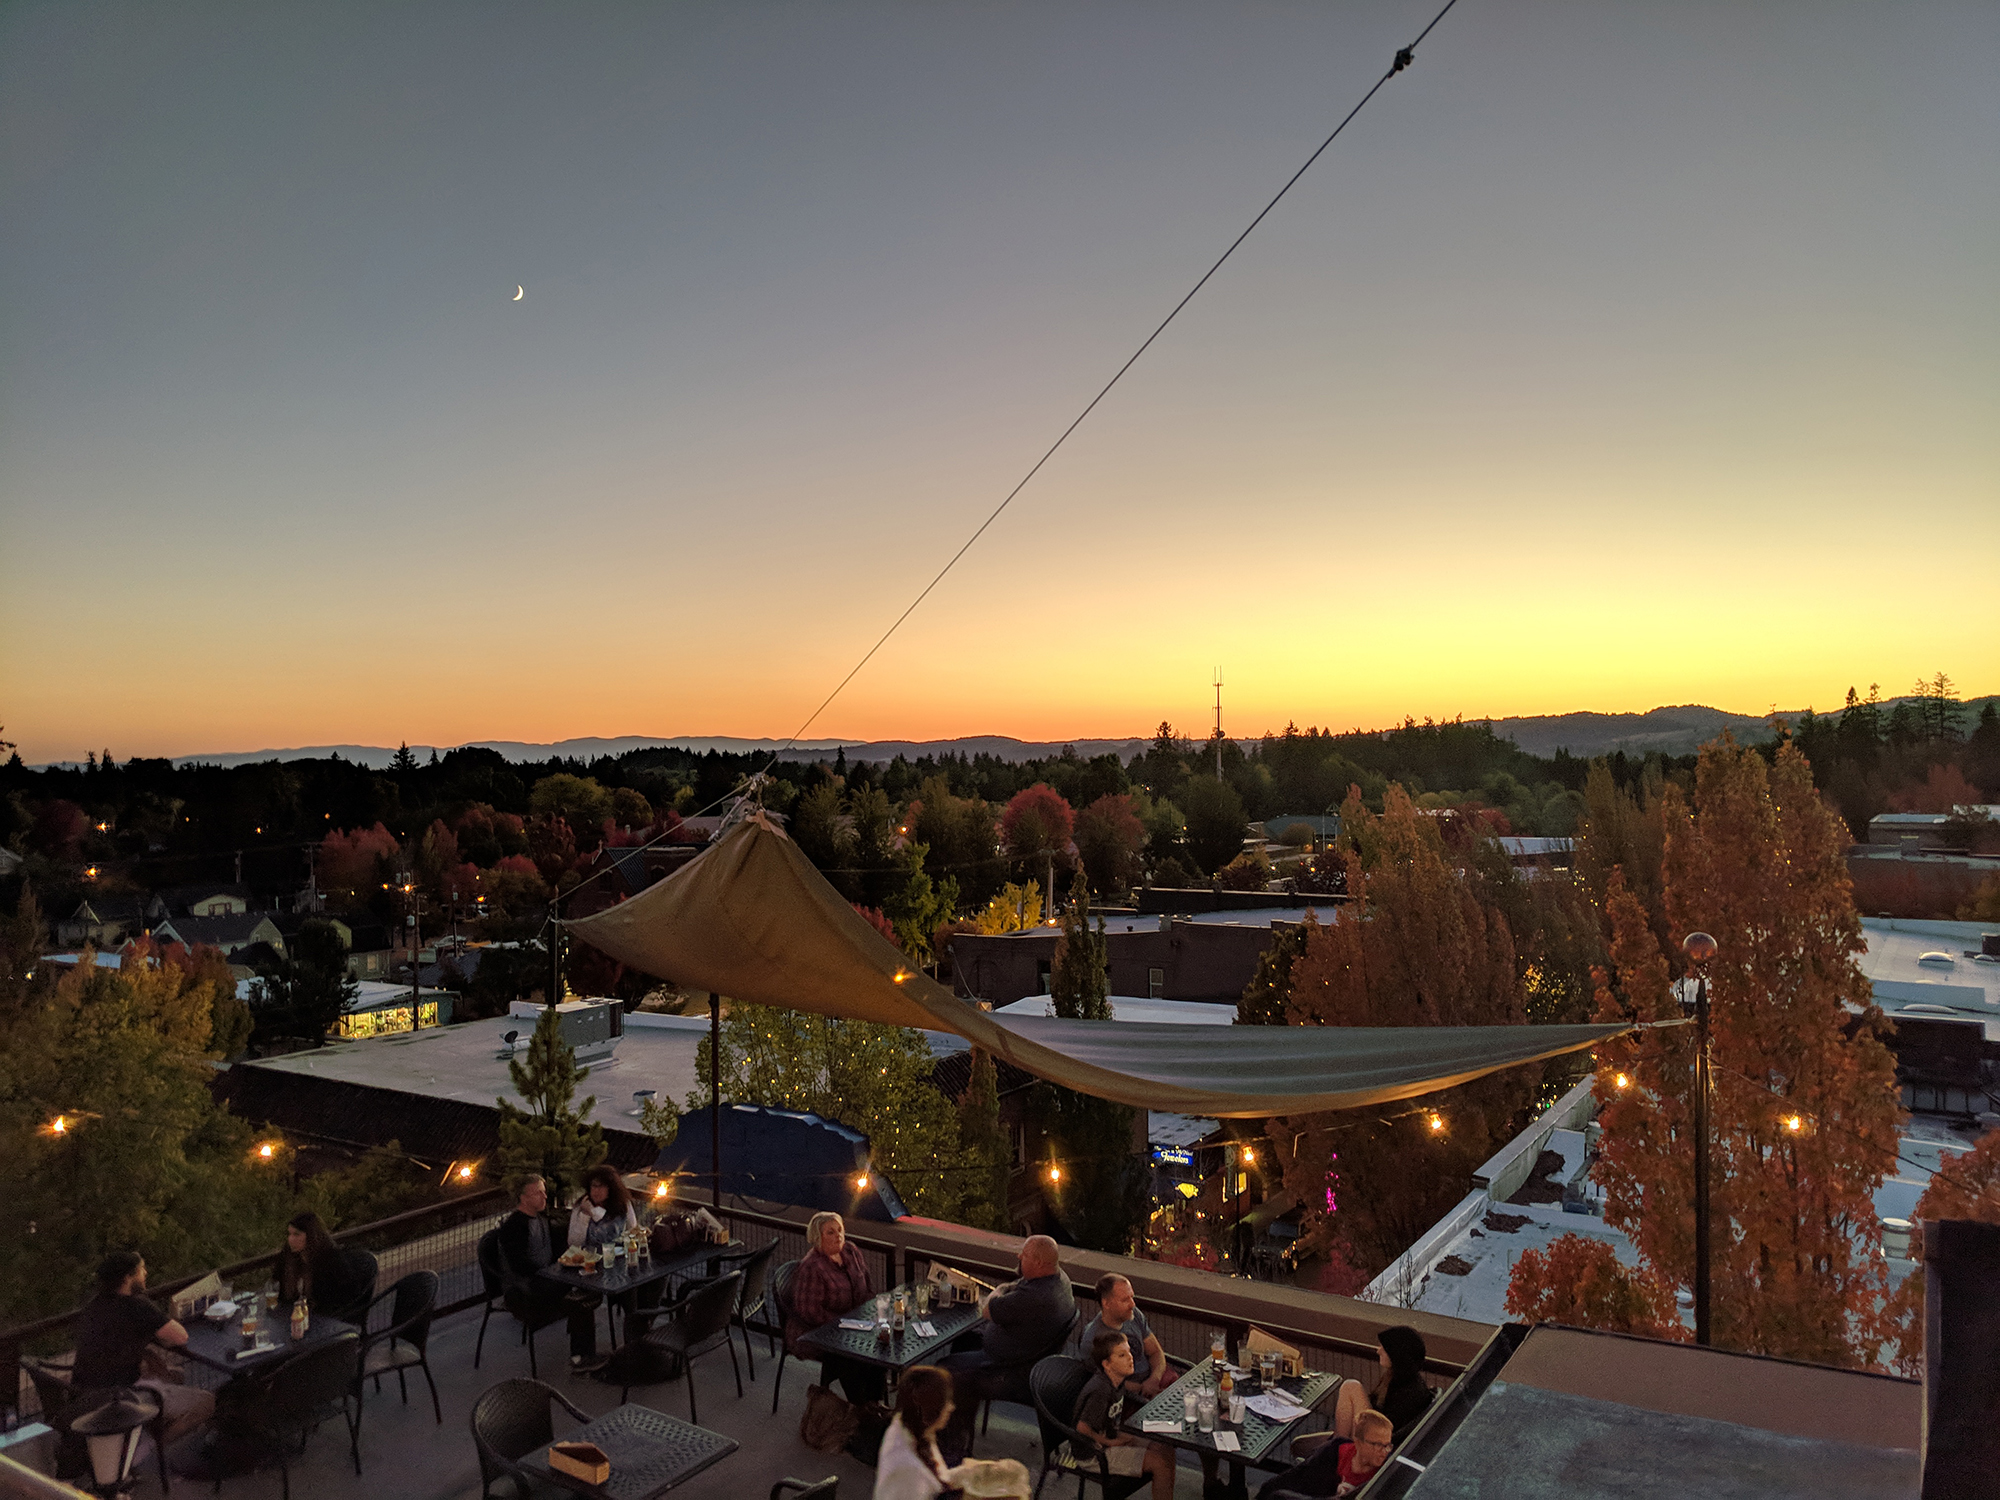 The rooftop view from McMenamins Hotel Oregon Rooftop Bar